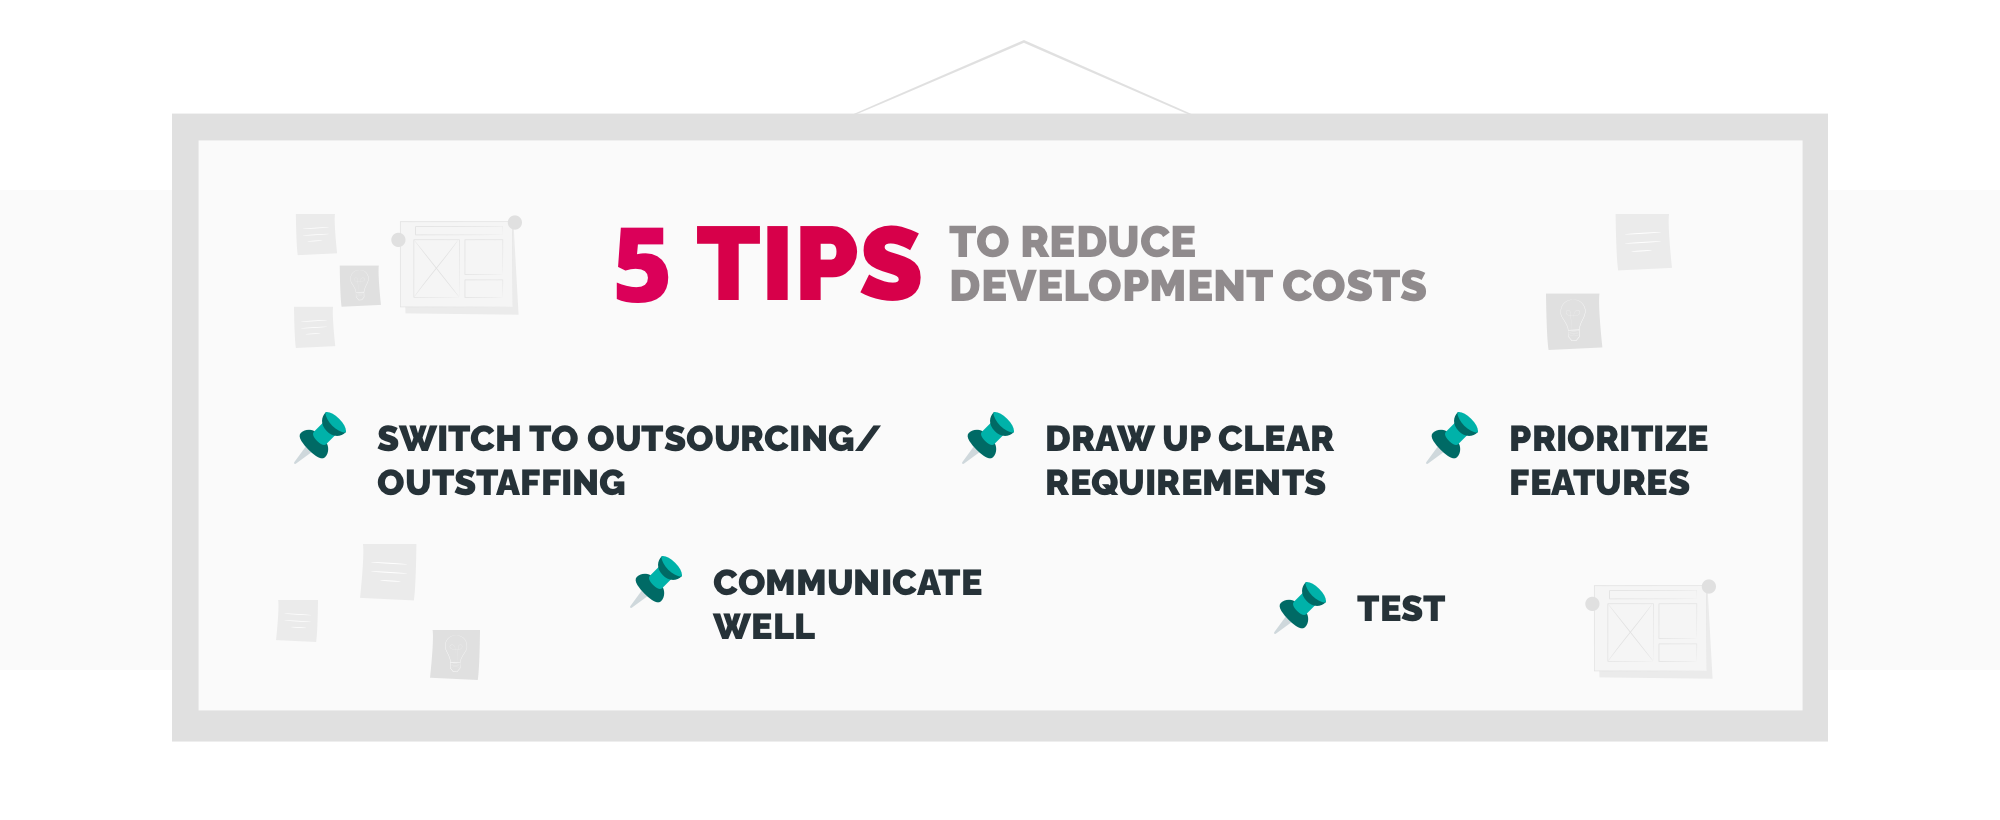 how to reduce software development costs